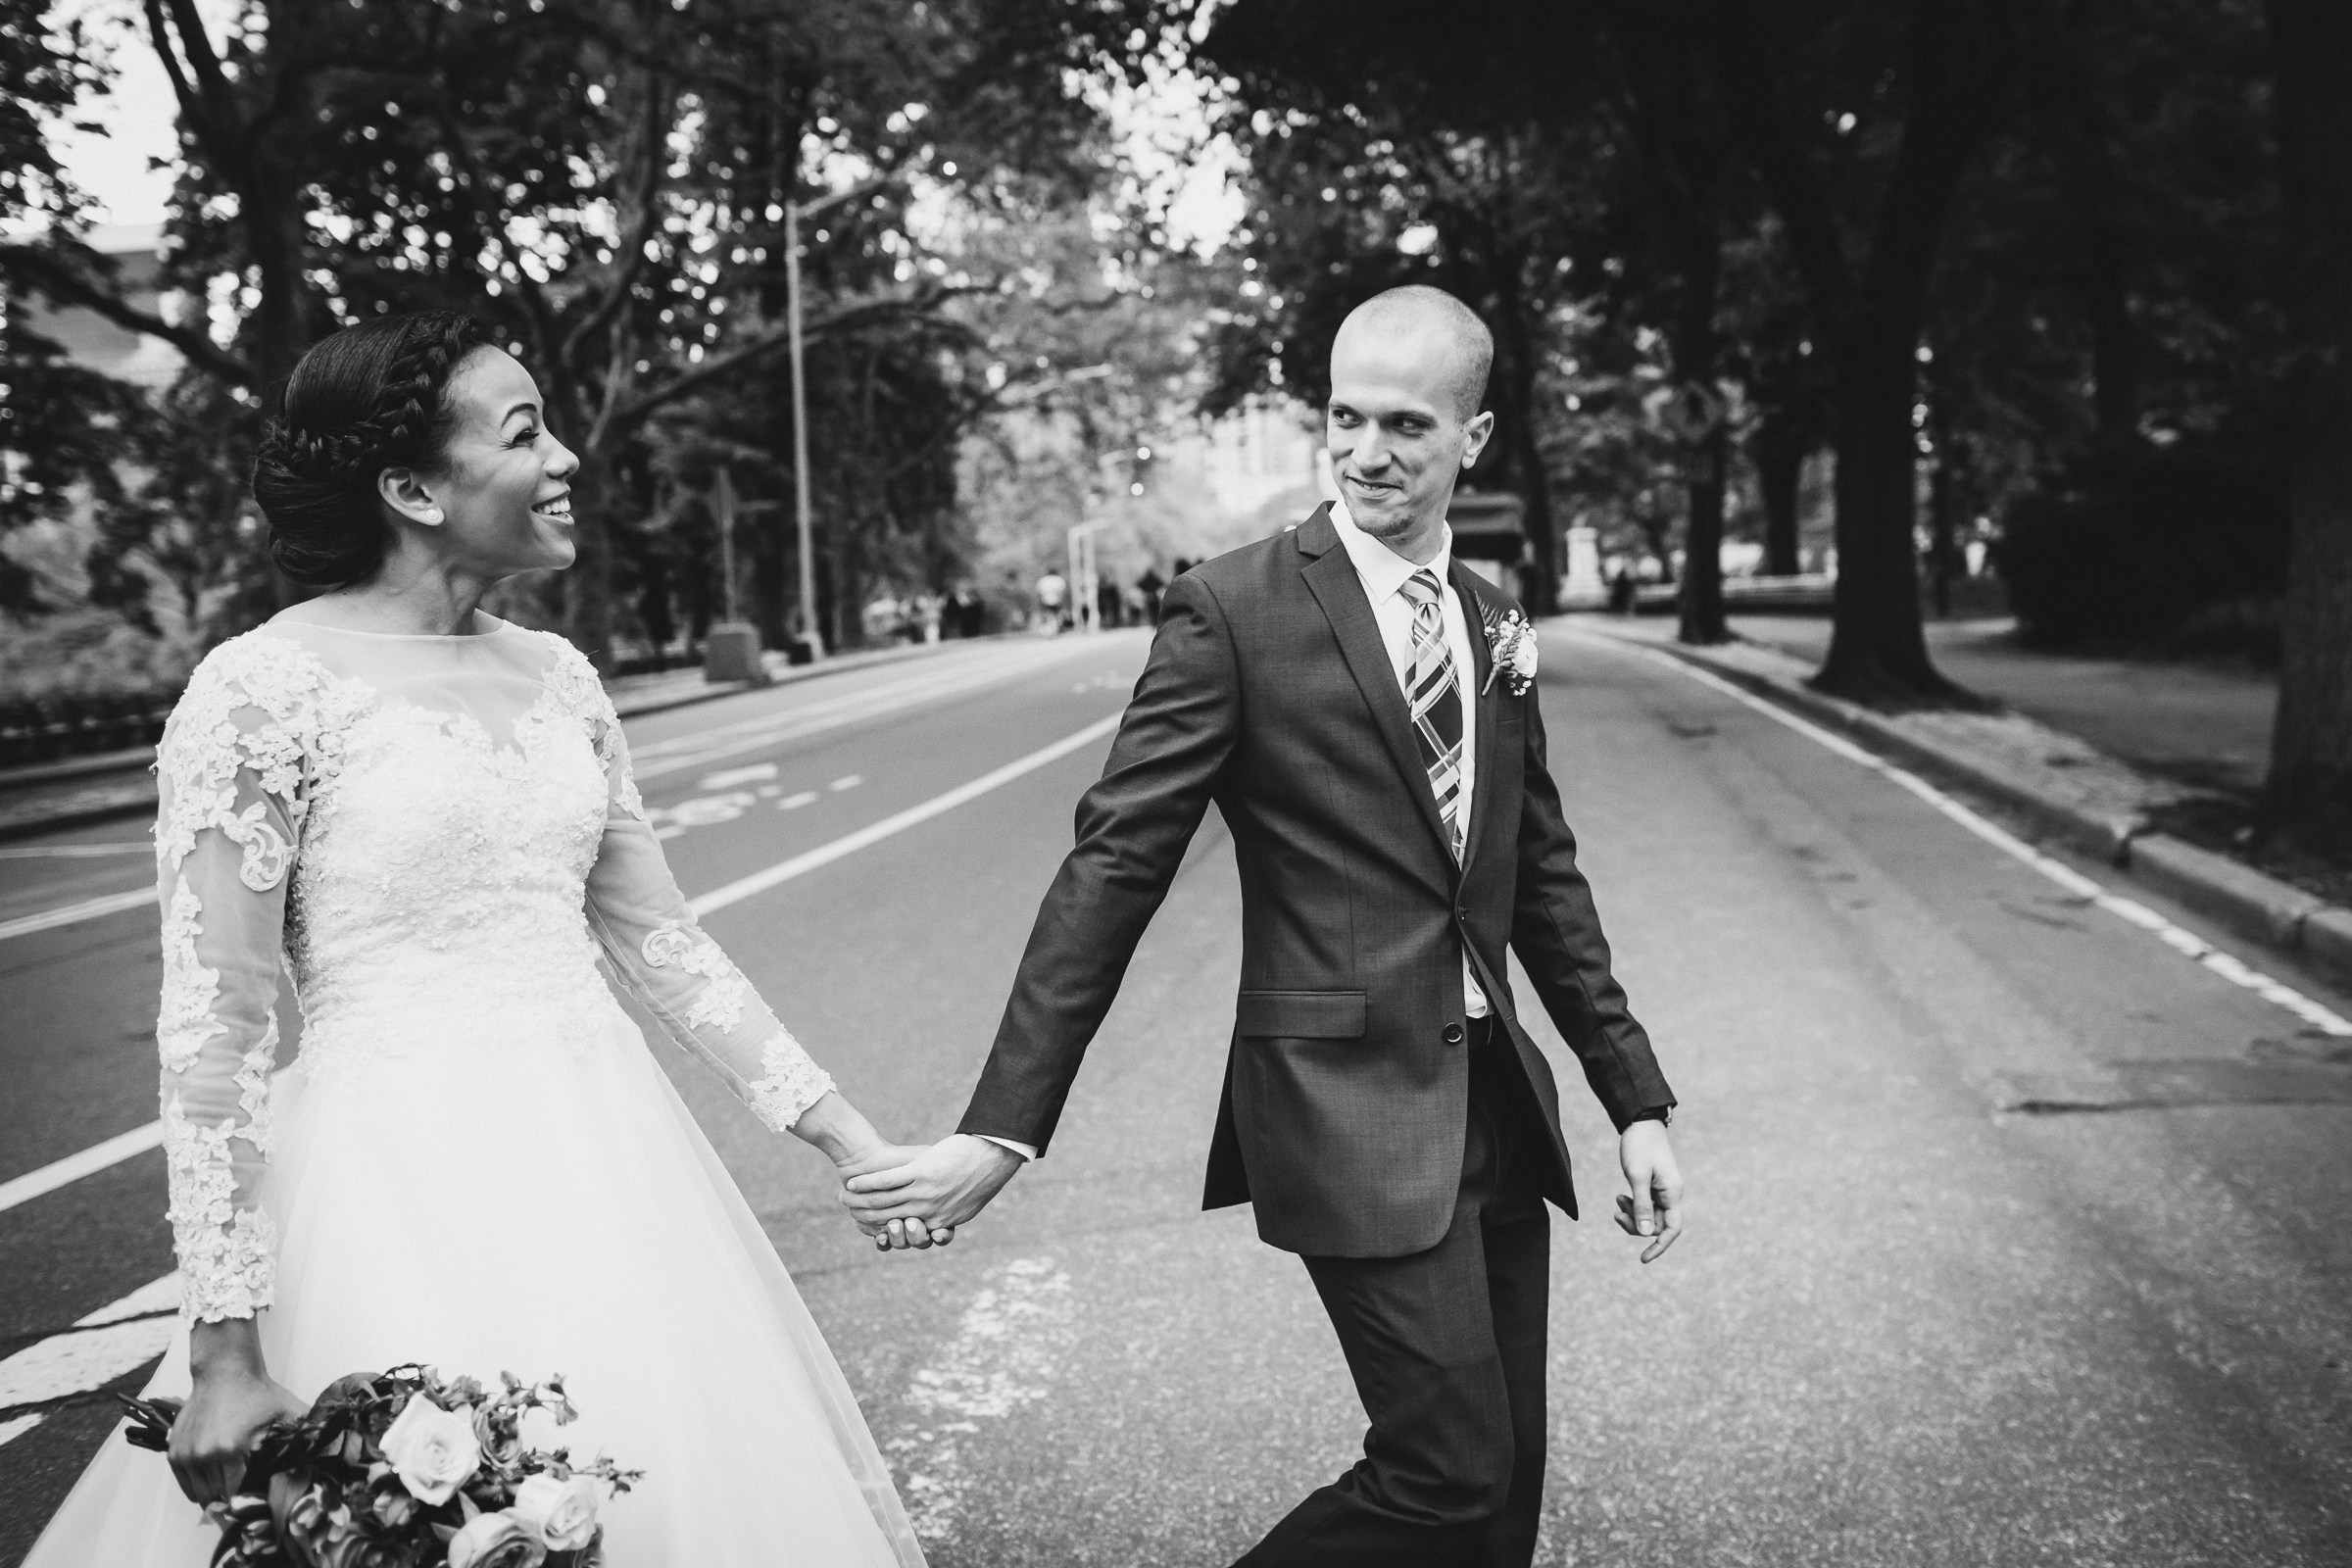 Wagner-Cove-Central-Park-Elopement-New-York-Documentary-Wedding-Photographer-32.jpg